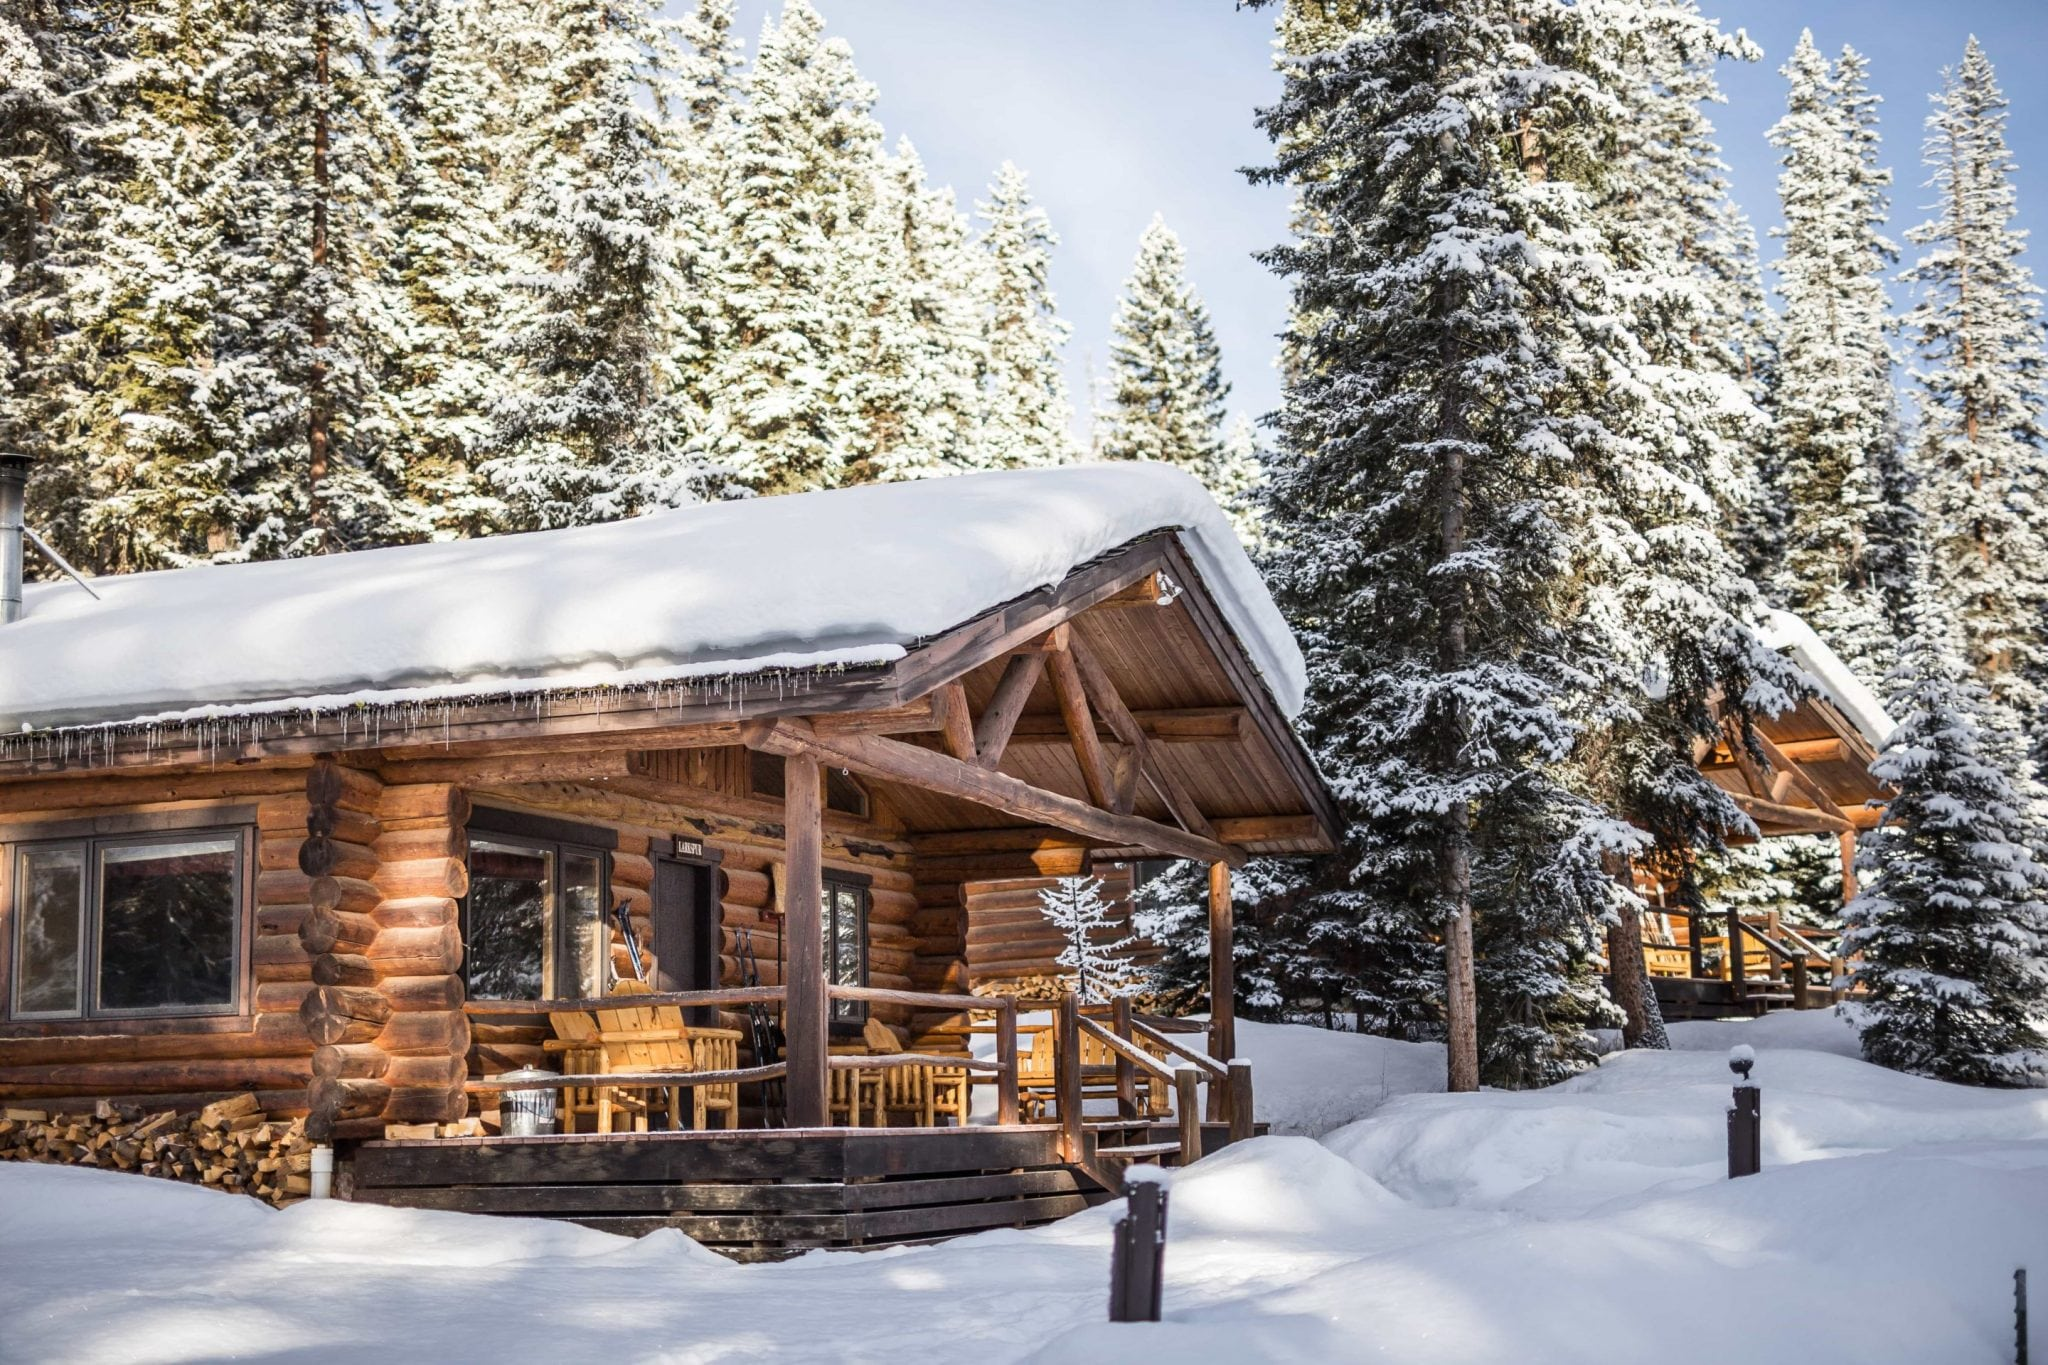 Lone Mountain Ranch - Coyote Cabin in winter